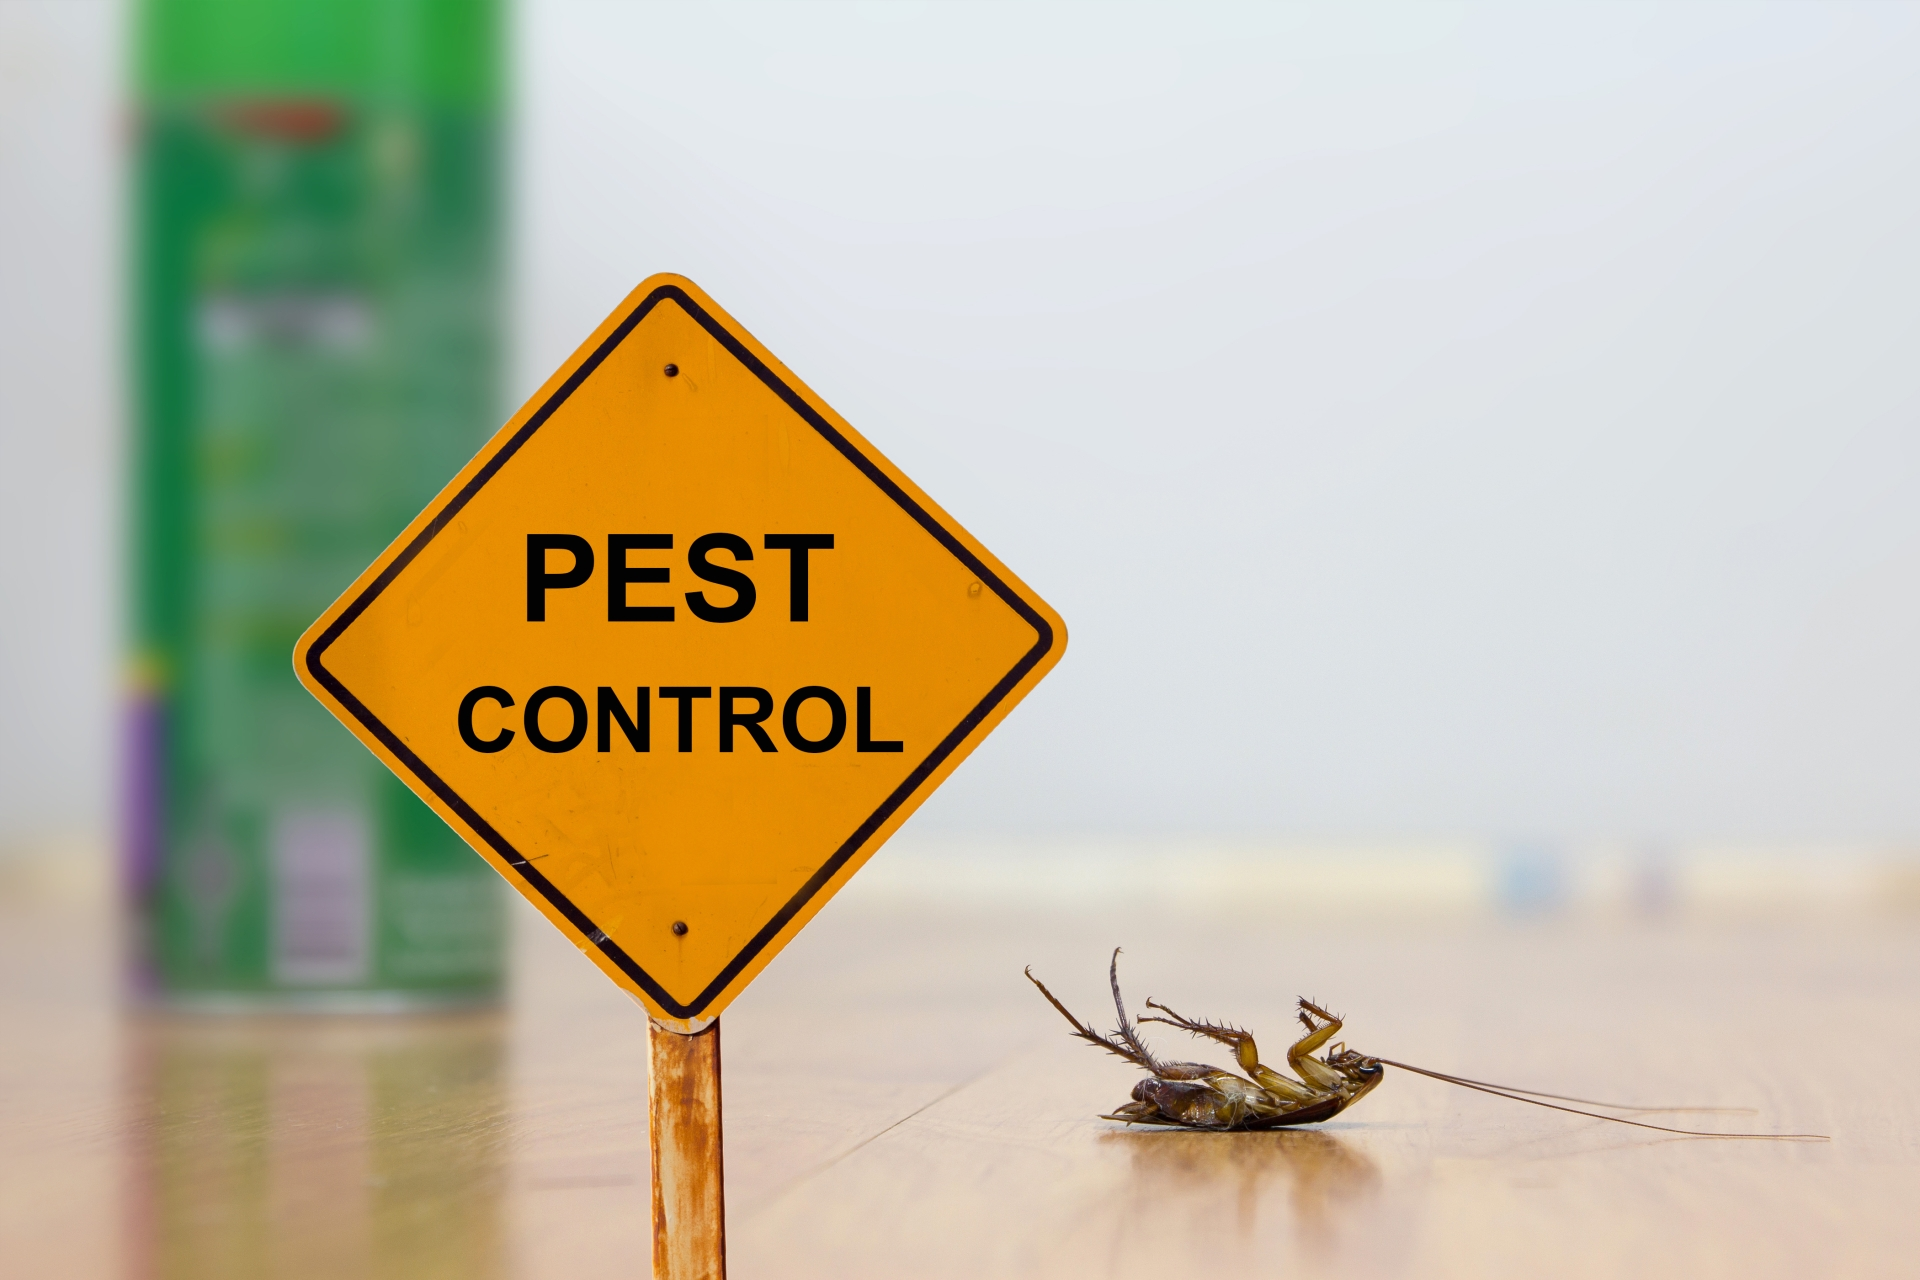 24 Hour Pest Control, Pest Control in Purley, Kenley, CR8. Call Now 020 8166 9746